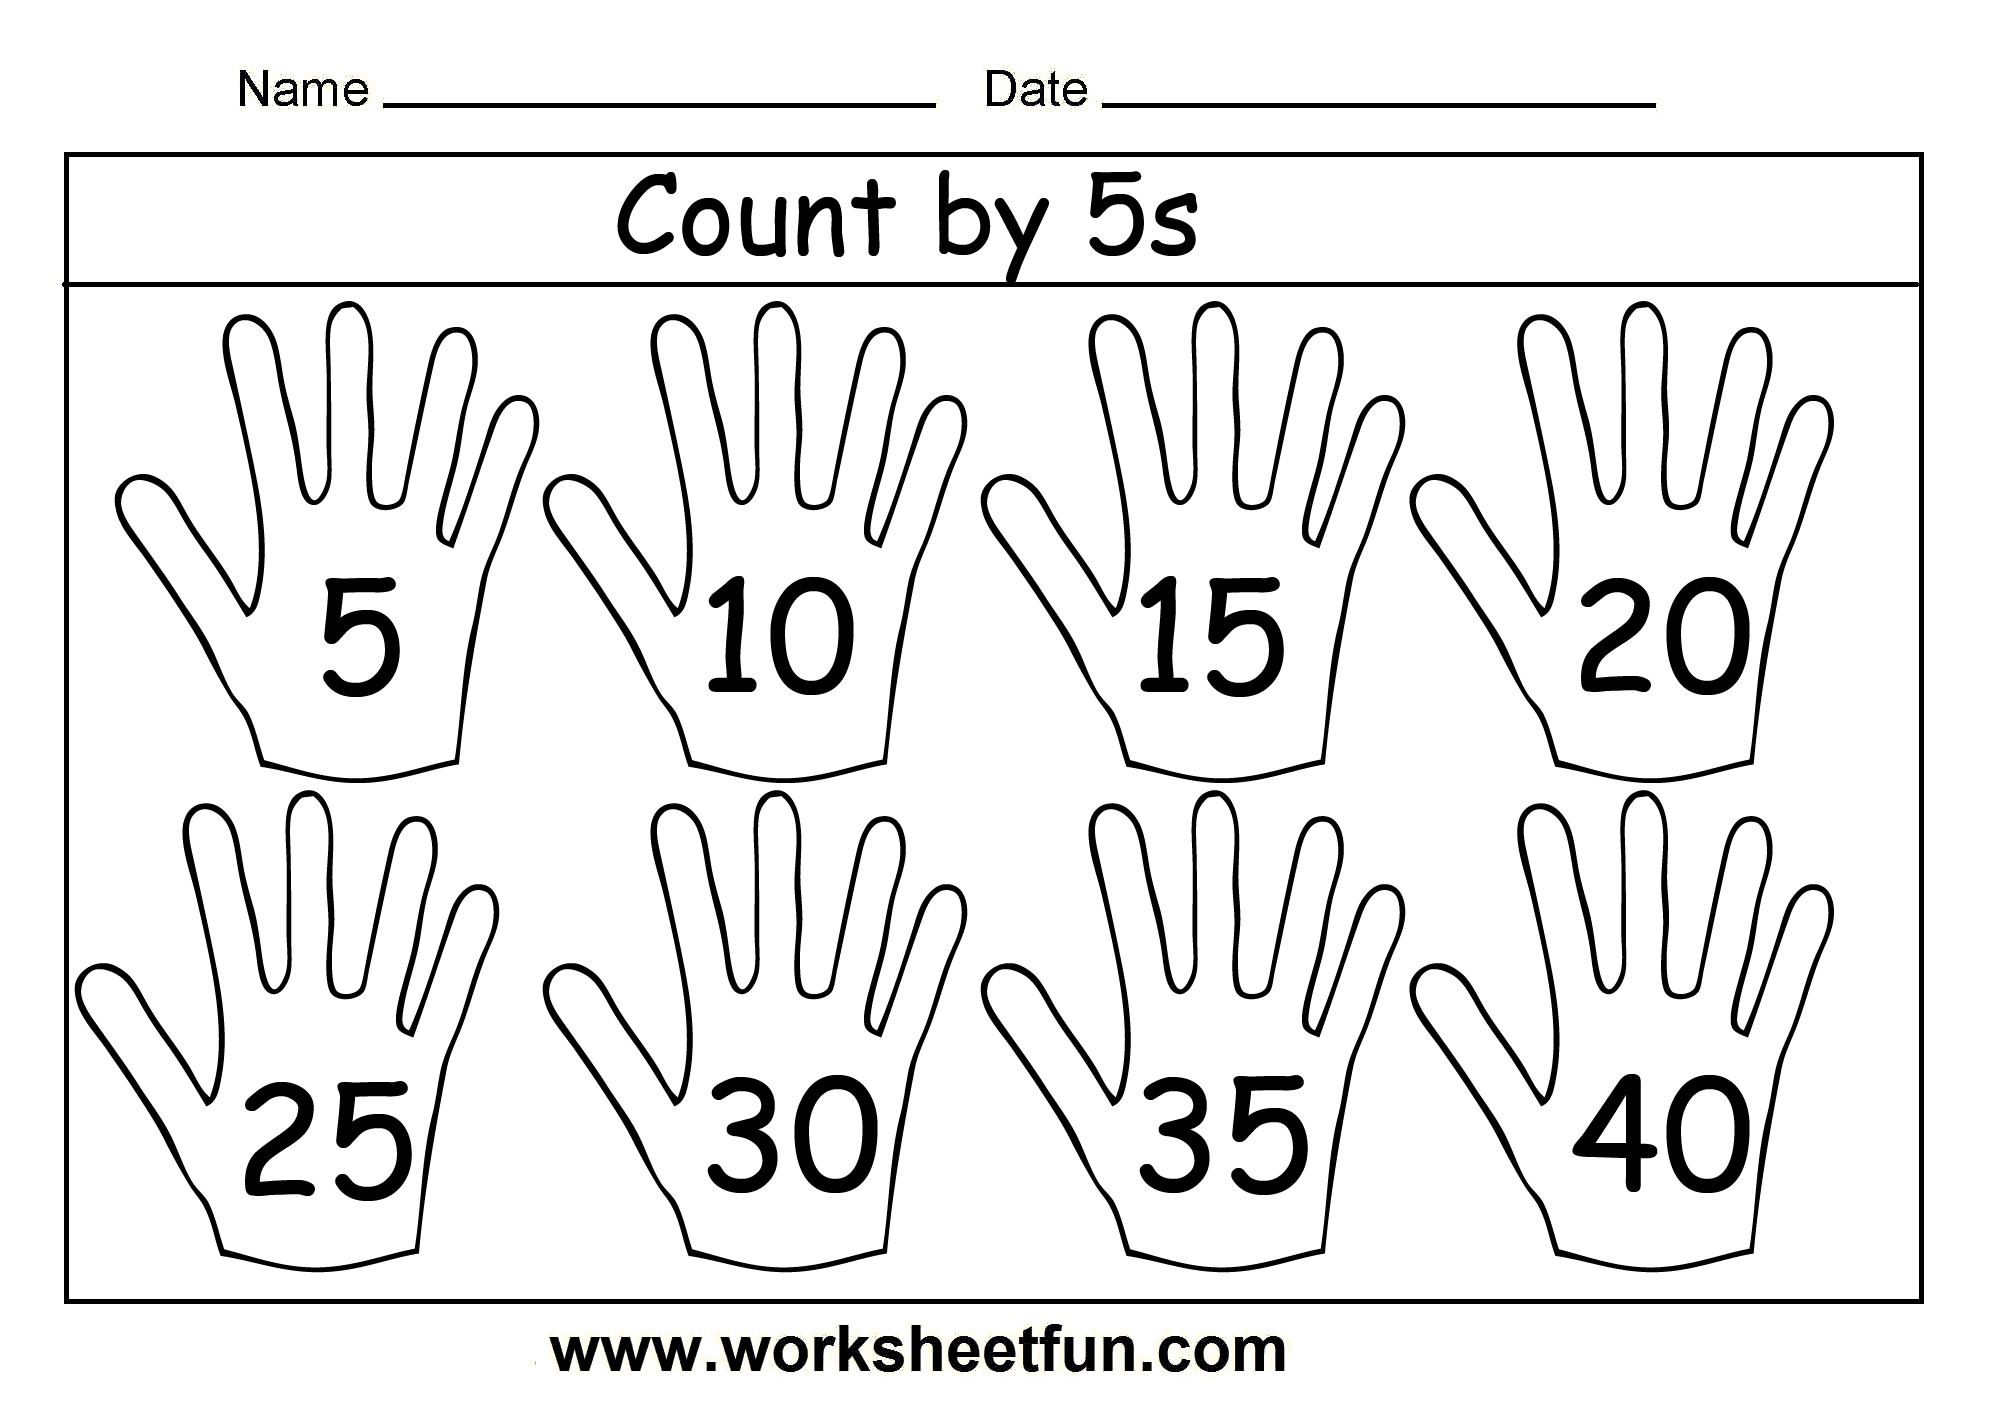 medium resolution of Count by 5s – 3 Worksheets   Counting in 5s